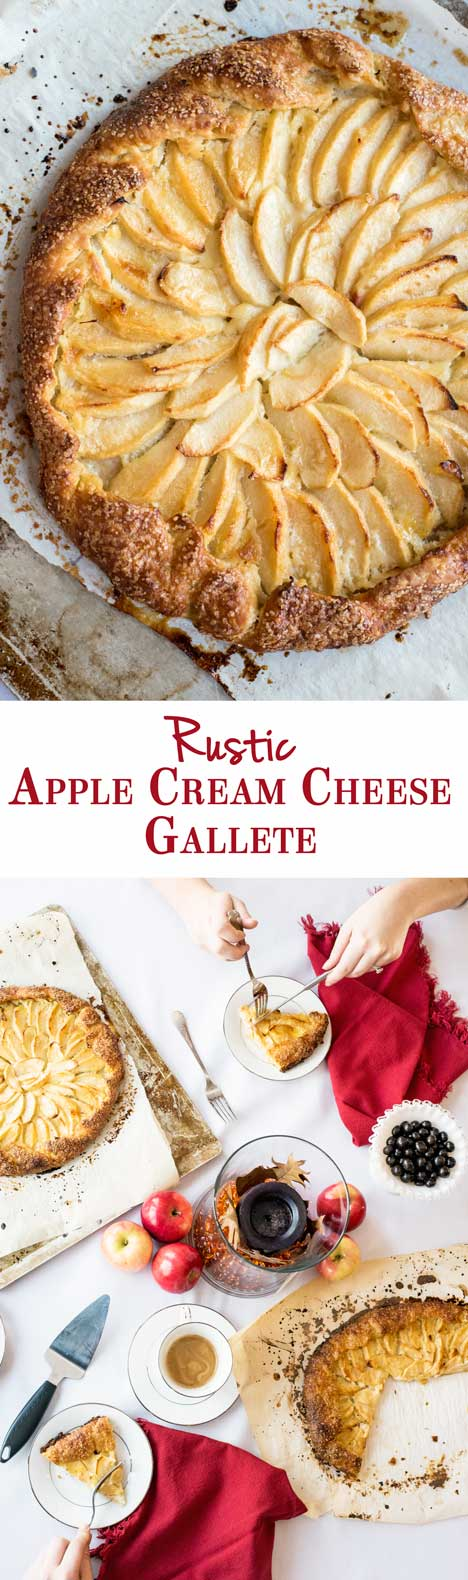 Pretty Rustic Apple Cream Cheese Galettes - the perfect fall rustic pie recipe